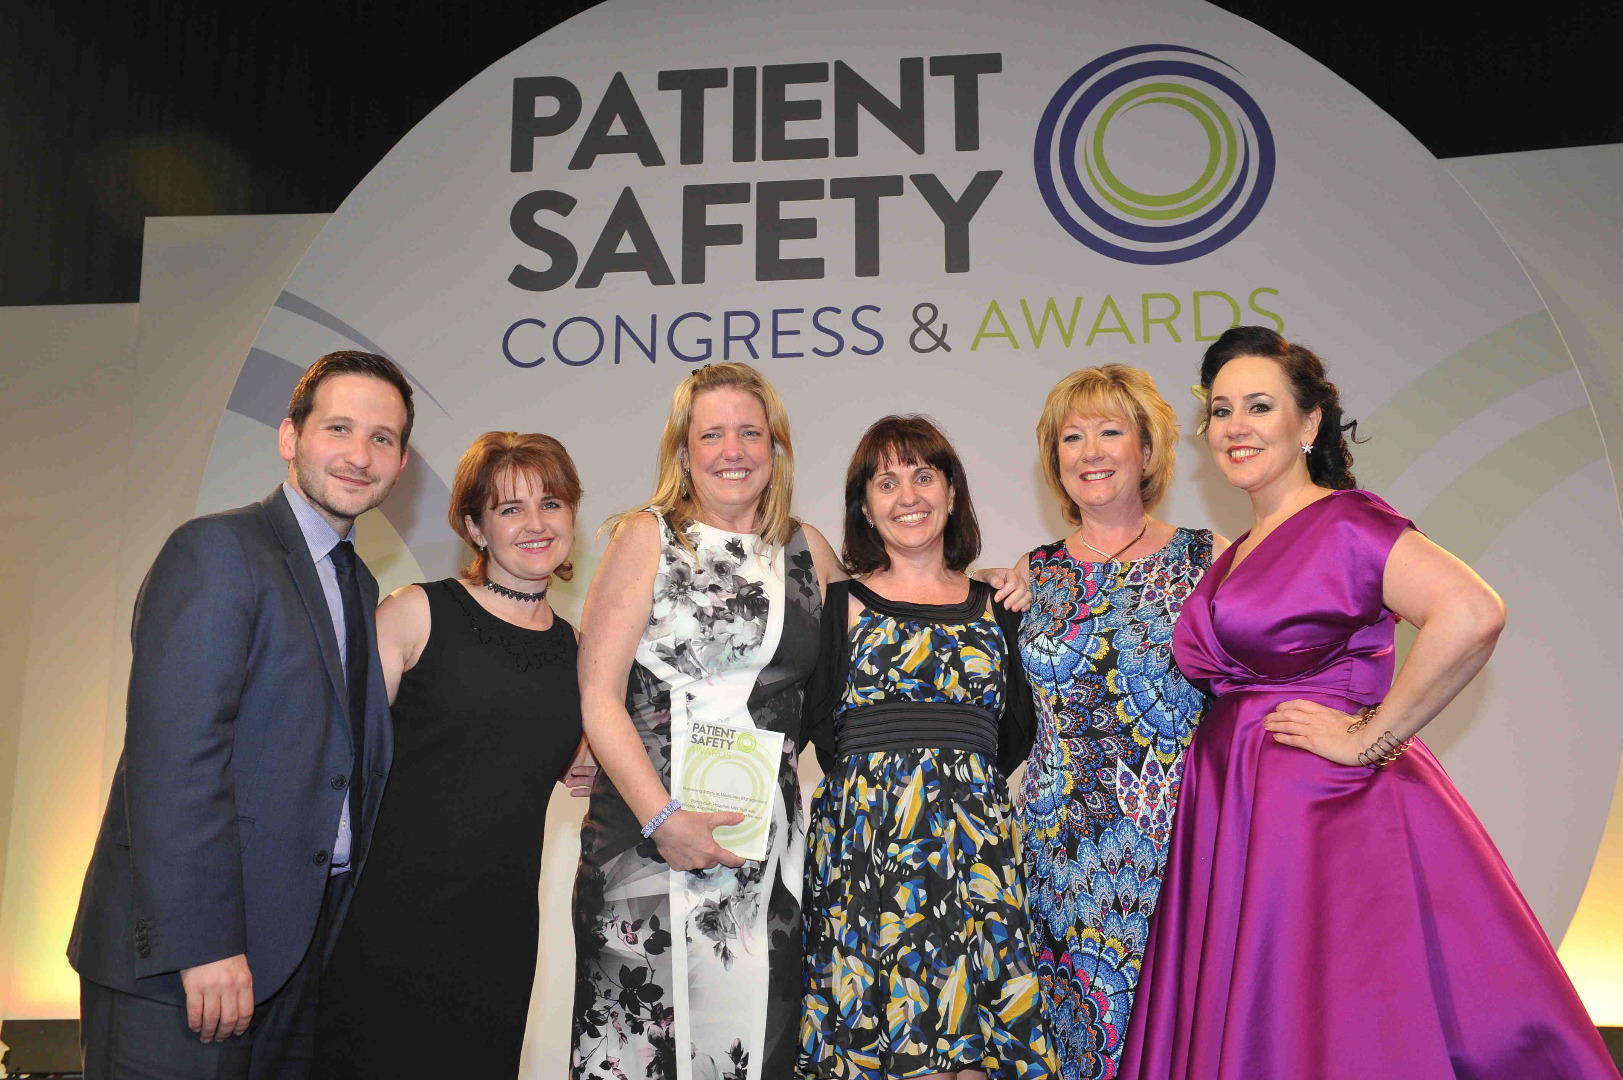 MISSION COPD win Patient Safety Award 2016